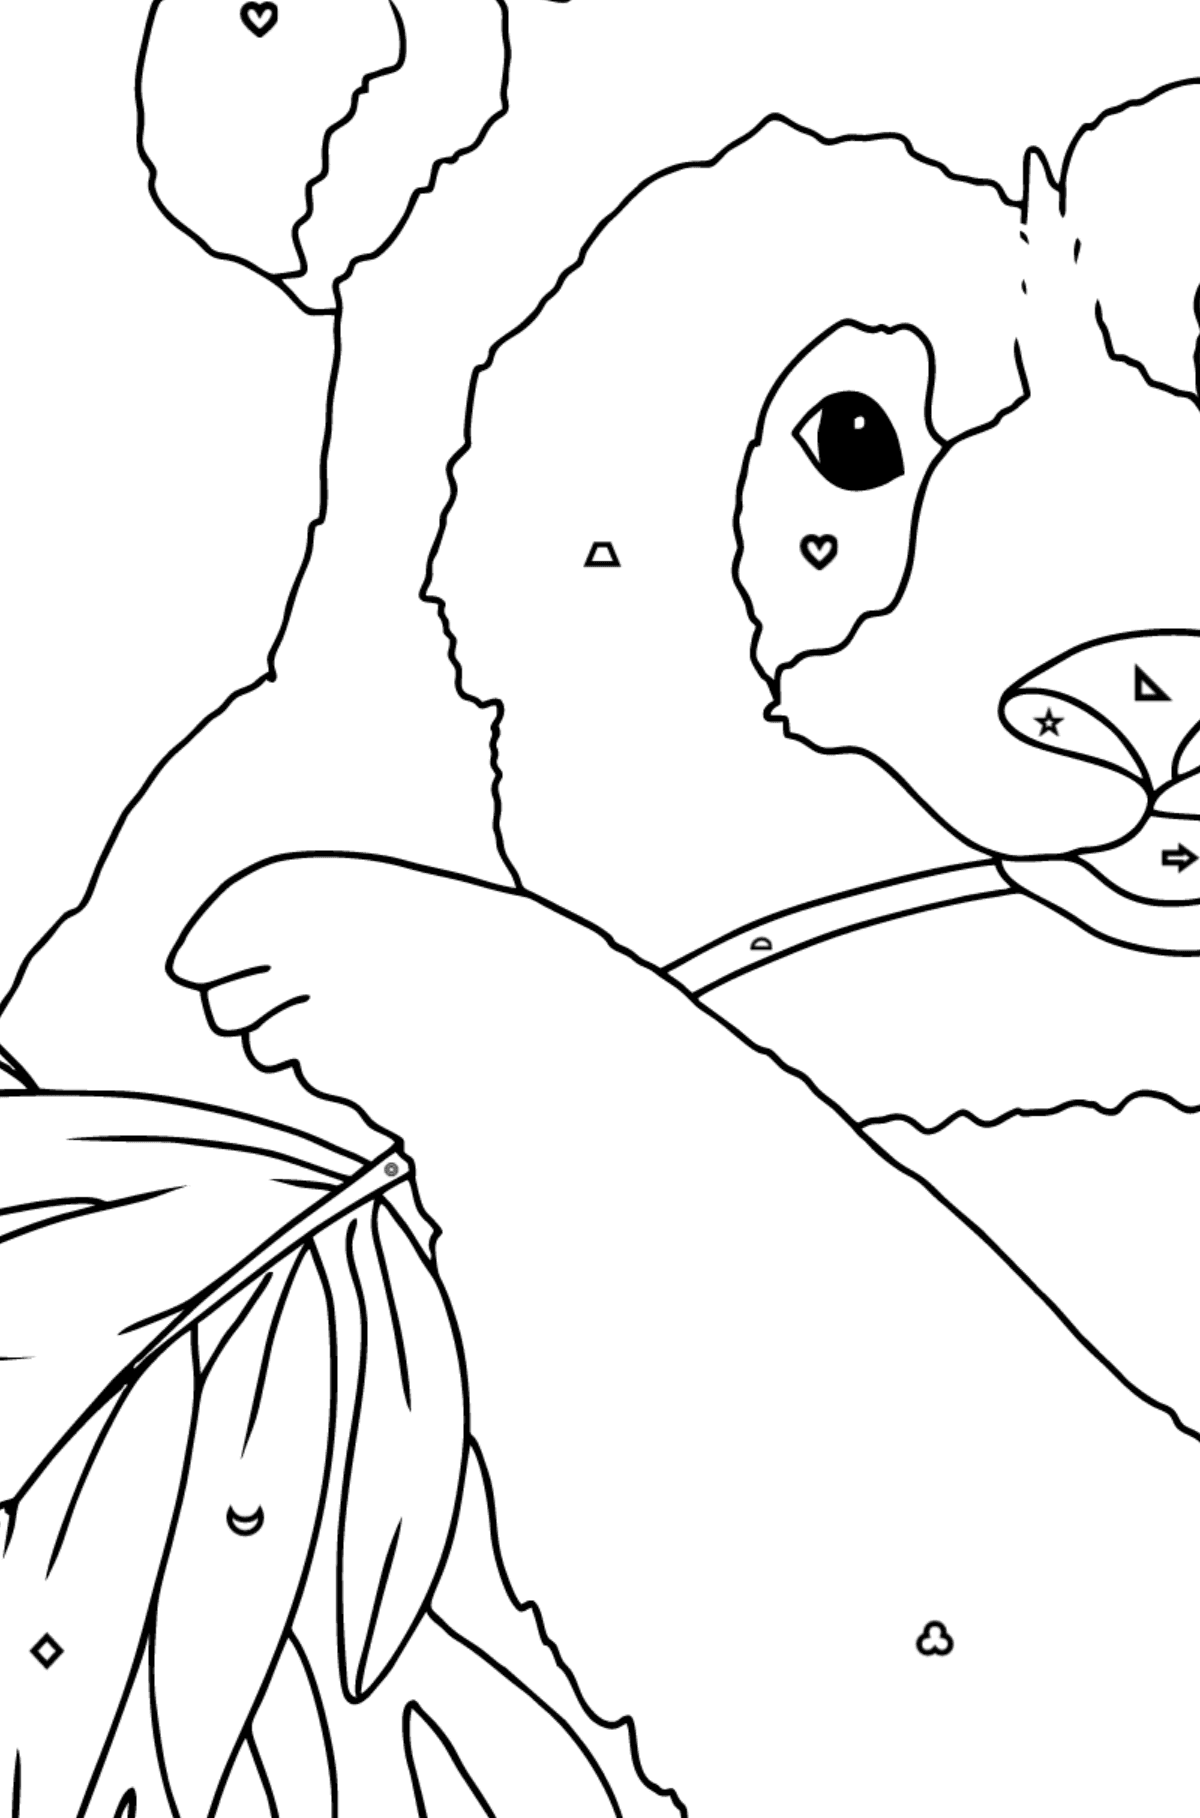 Coloring Page - A Panda is Eating Bamboo Leaves - Coloring by Geometric Shapes for Kids